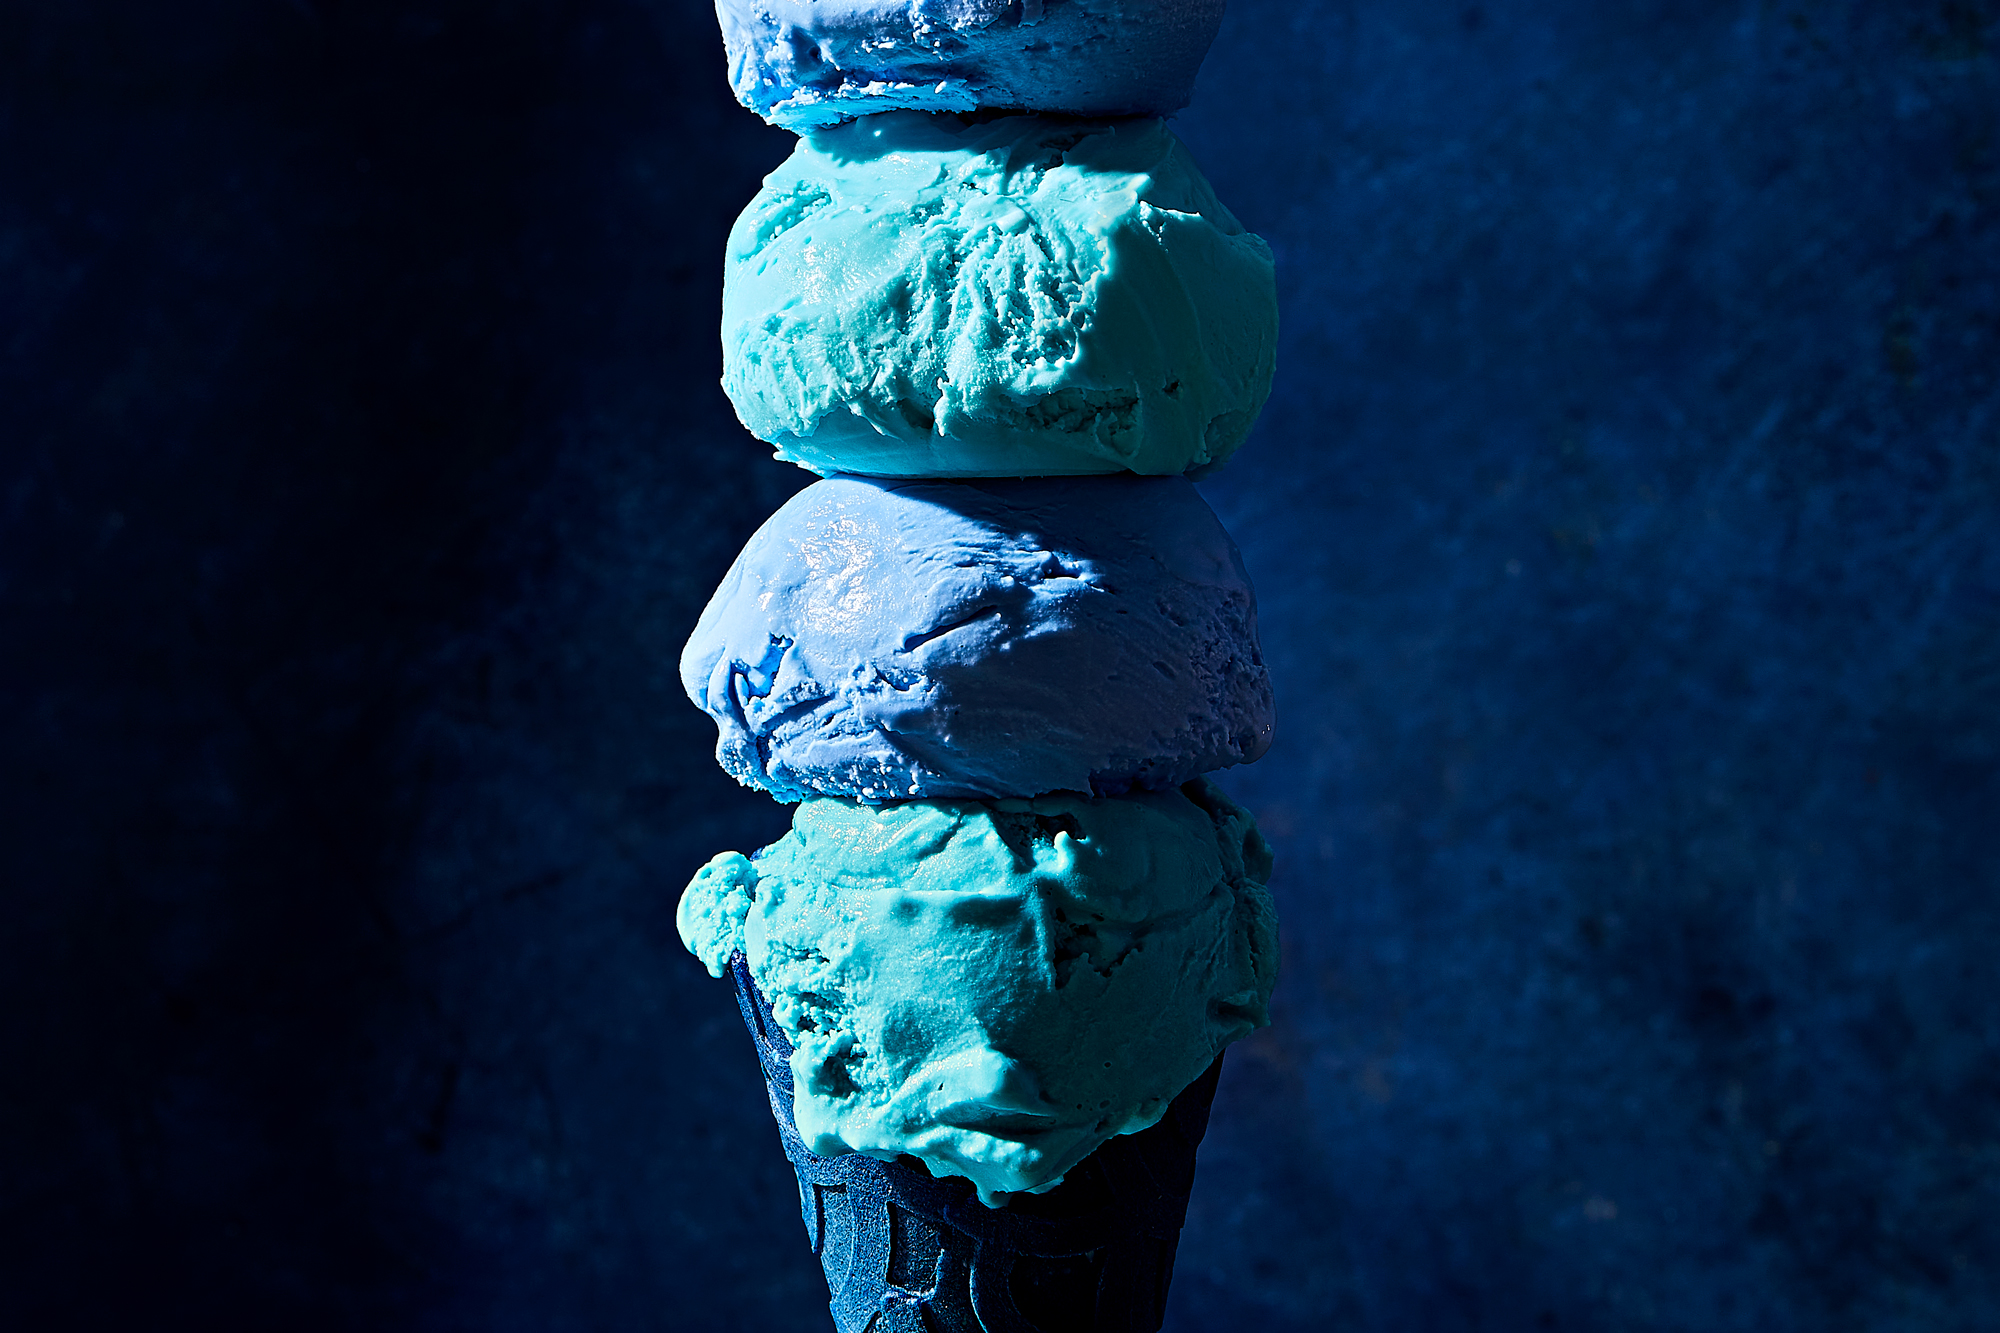 blue cone with many scoops of blue moon ice cream